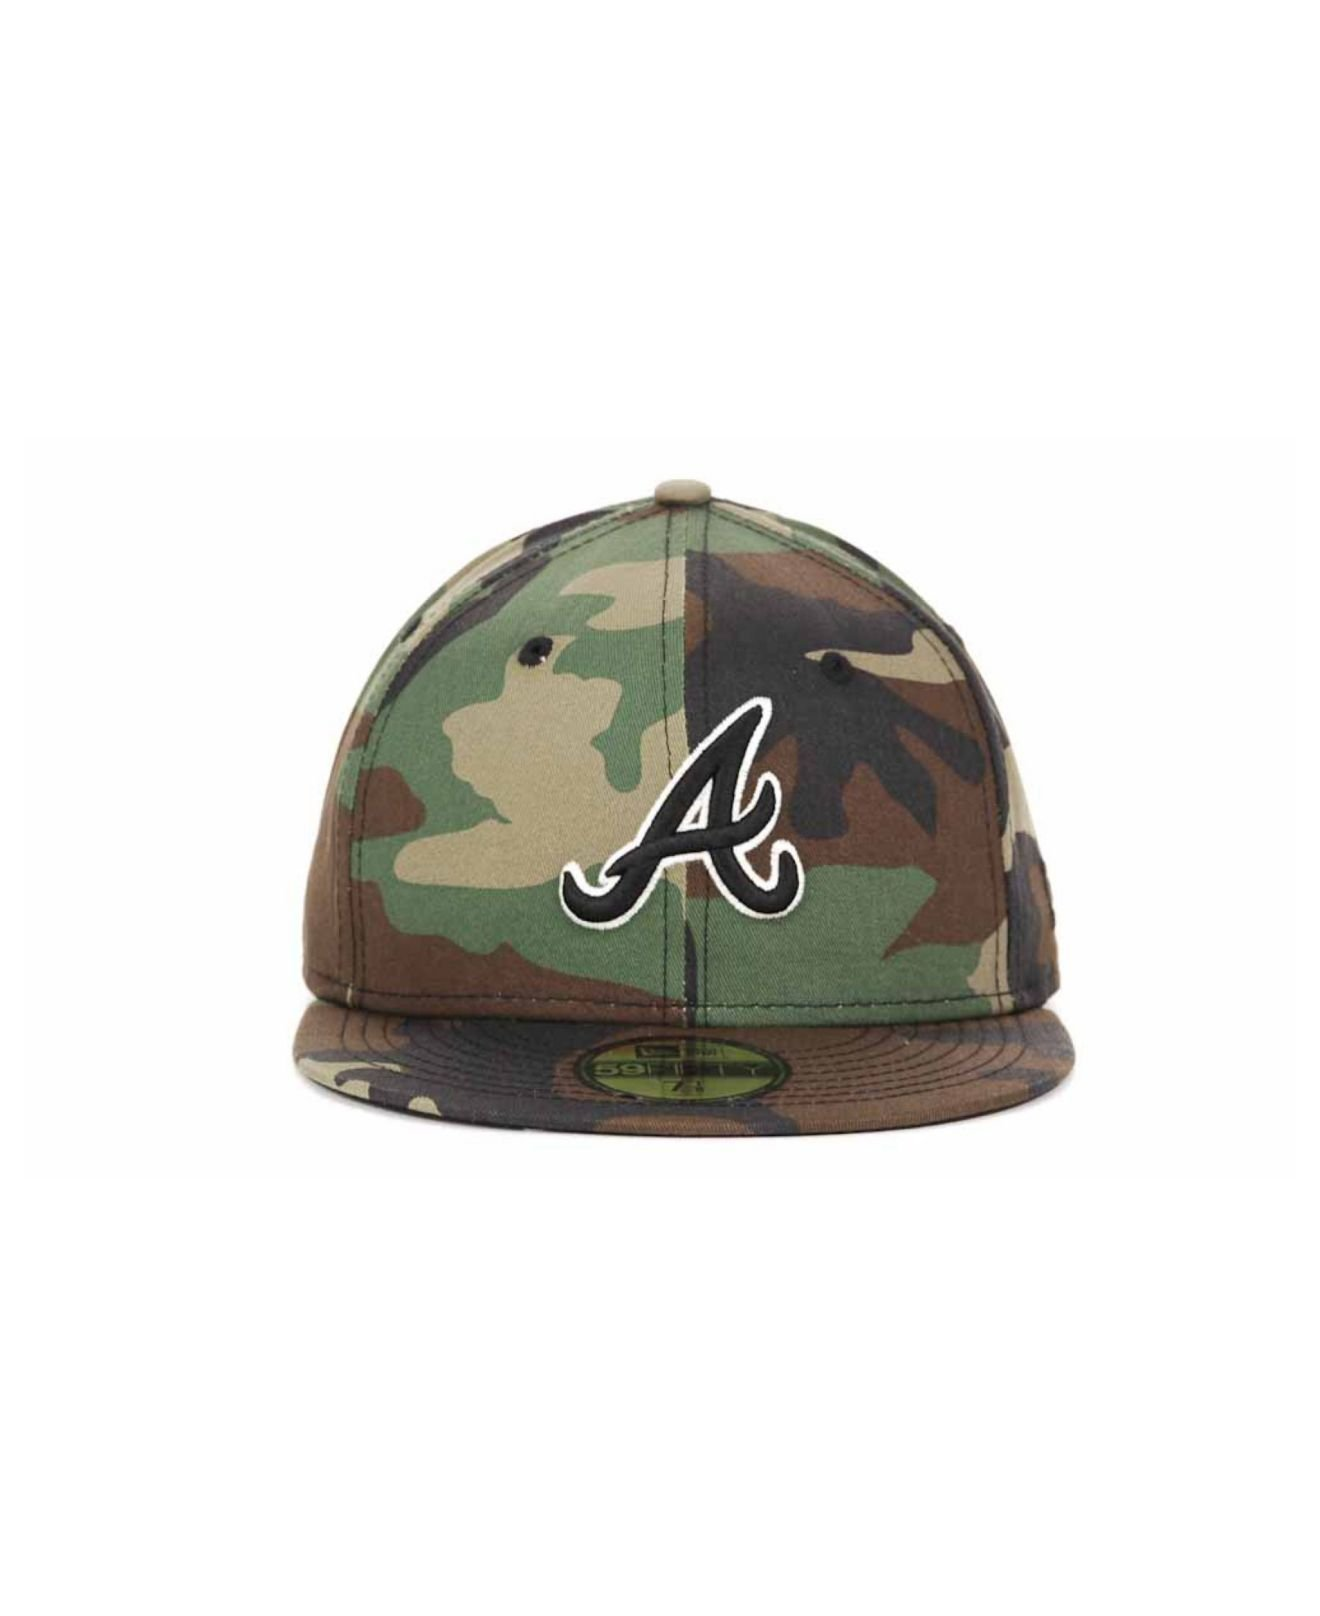 e24feeea130 ... discount code for lyst ktz atlanta braves mlb bc camo 59fifty cap in  green for men